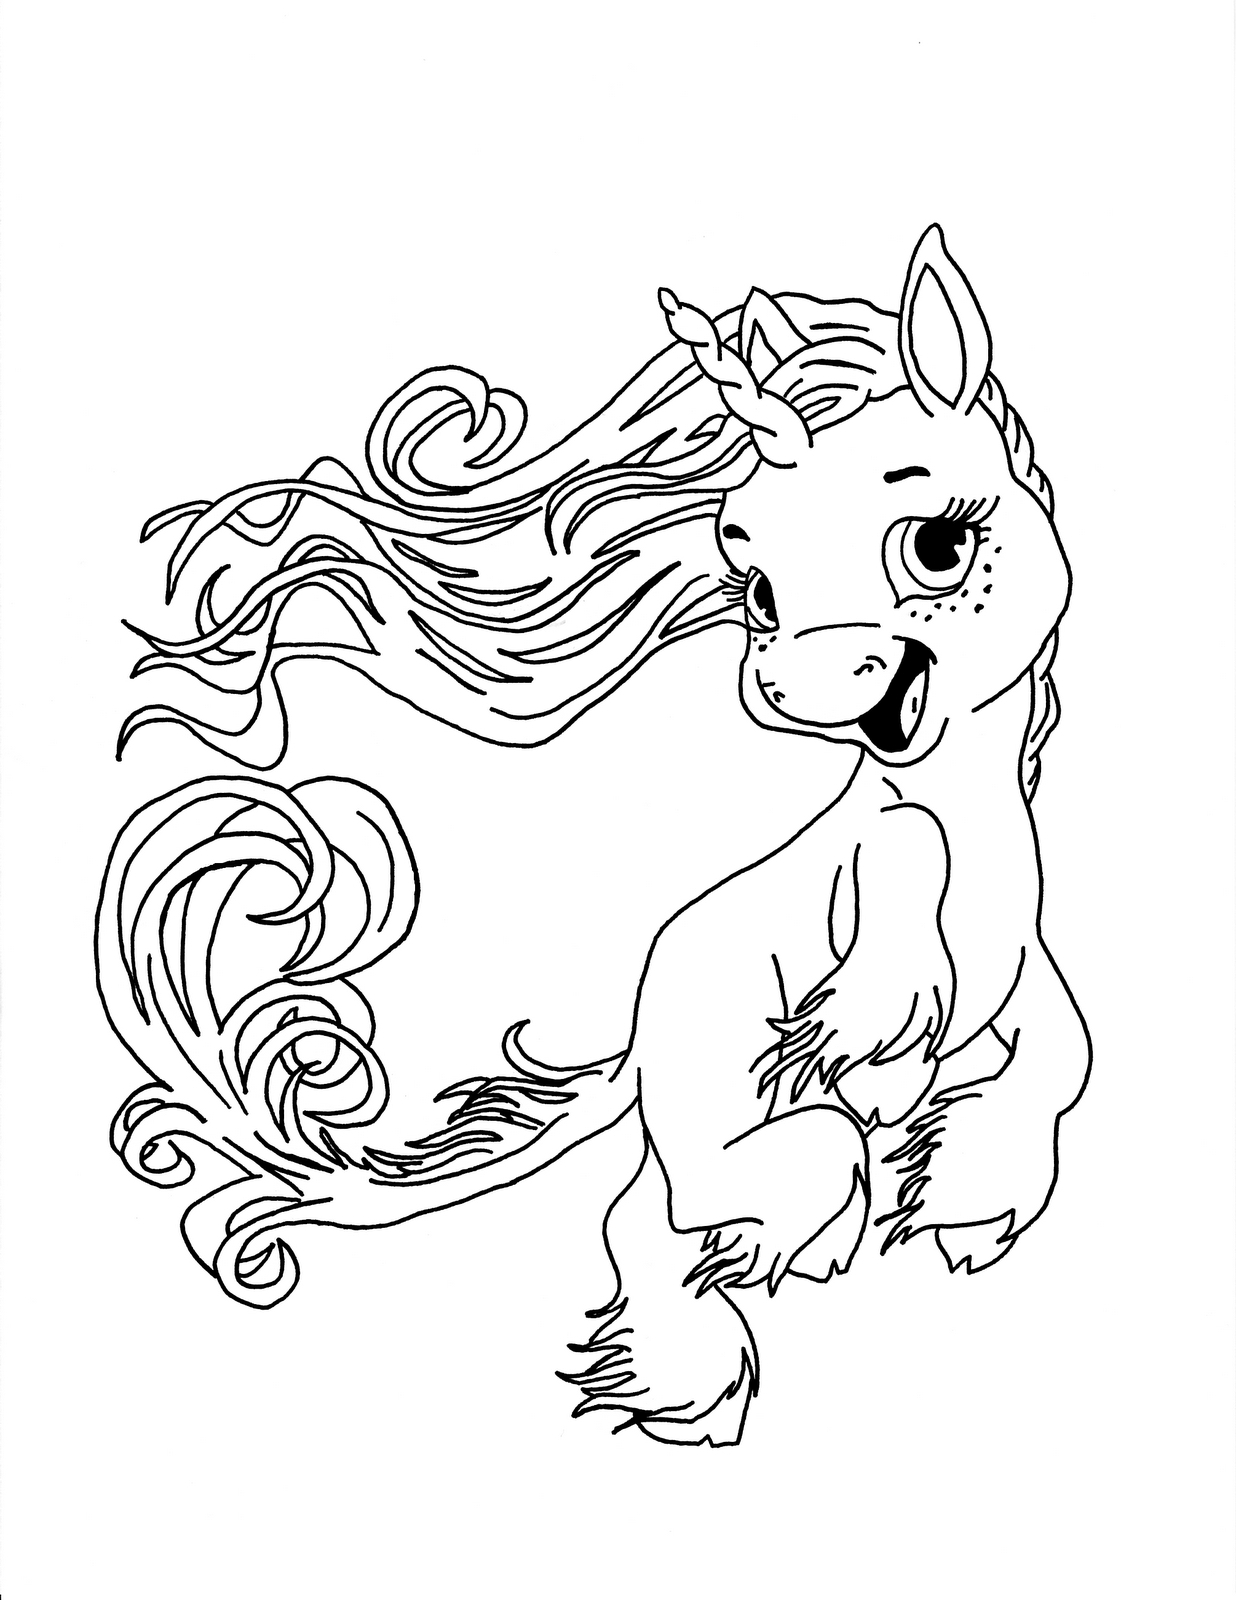 Coloring pages printable for teenagers